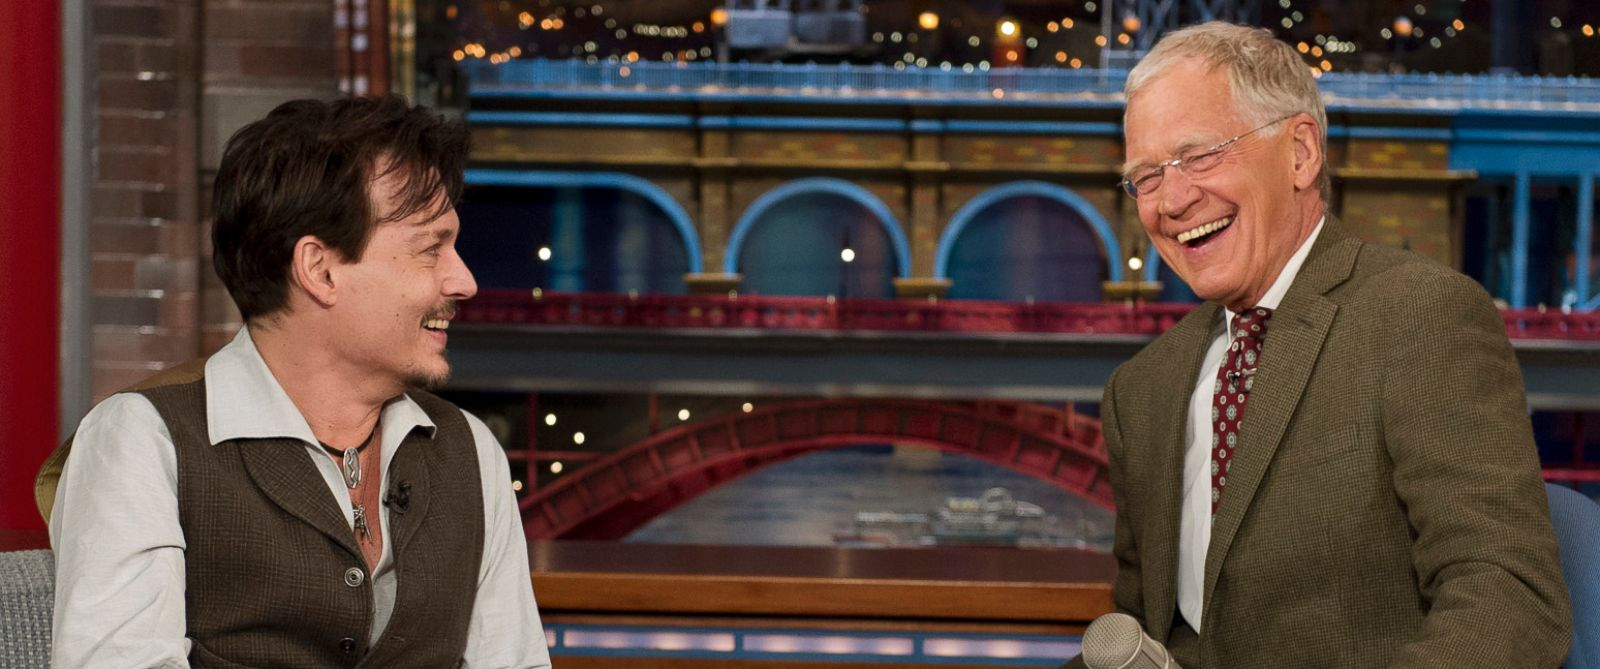 PHOTO: Johnny Depp, left, chats with David Letterman, right, on April 3, 2014 in New York City.